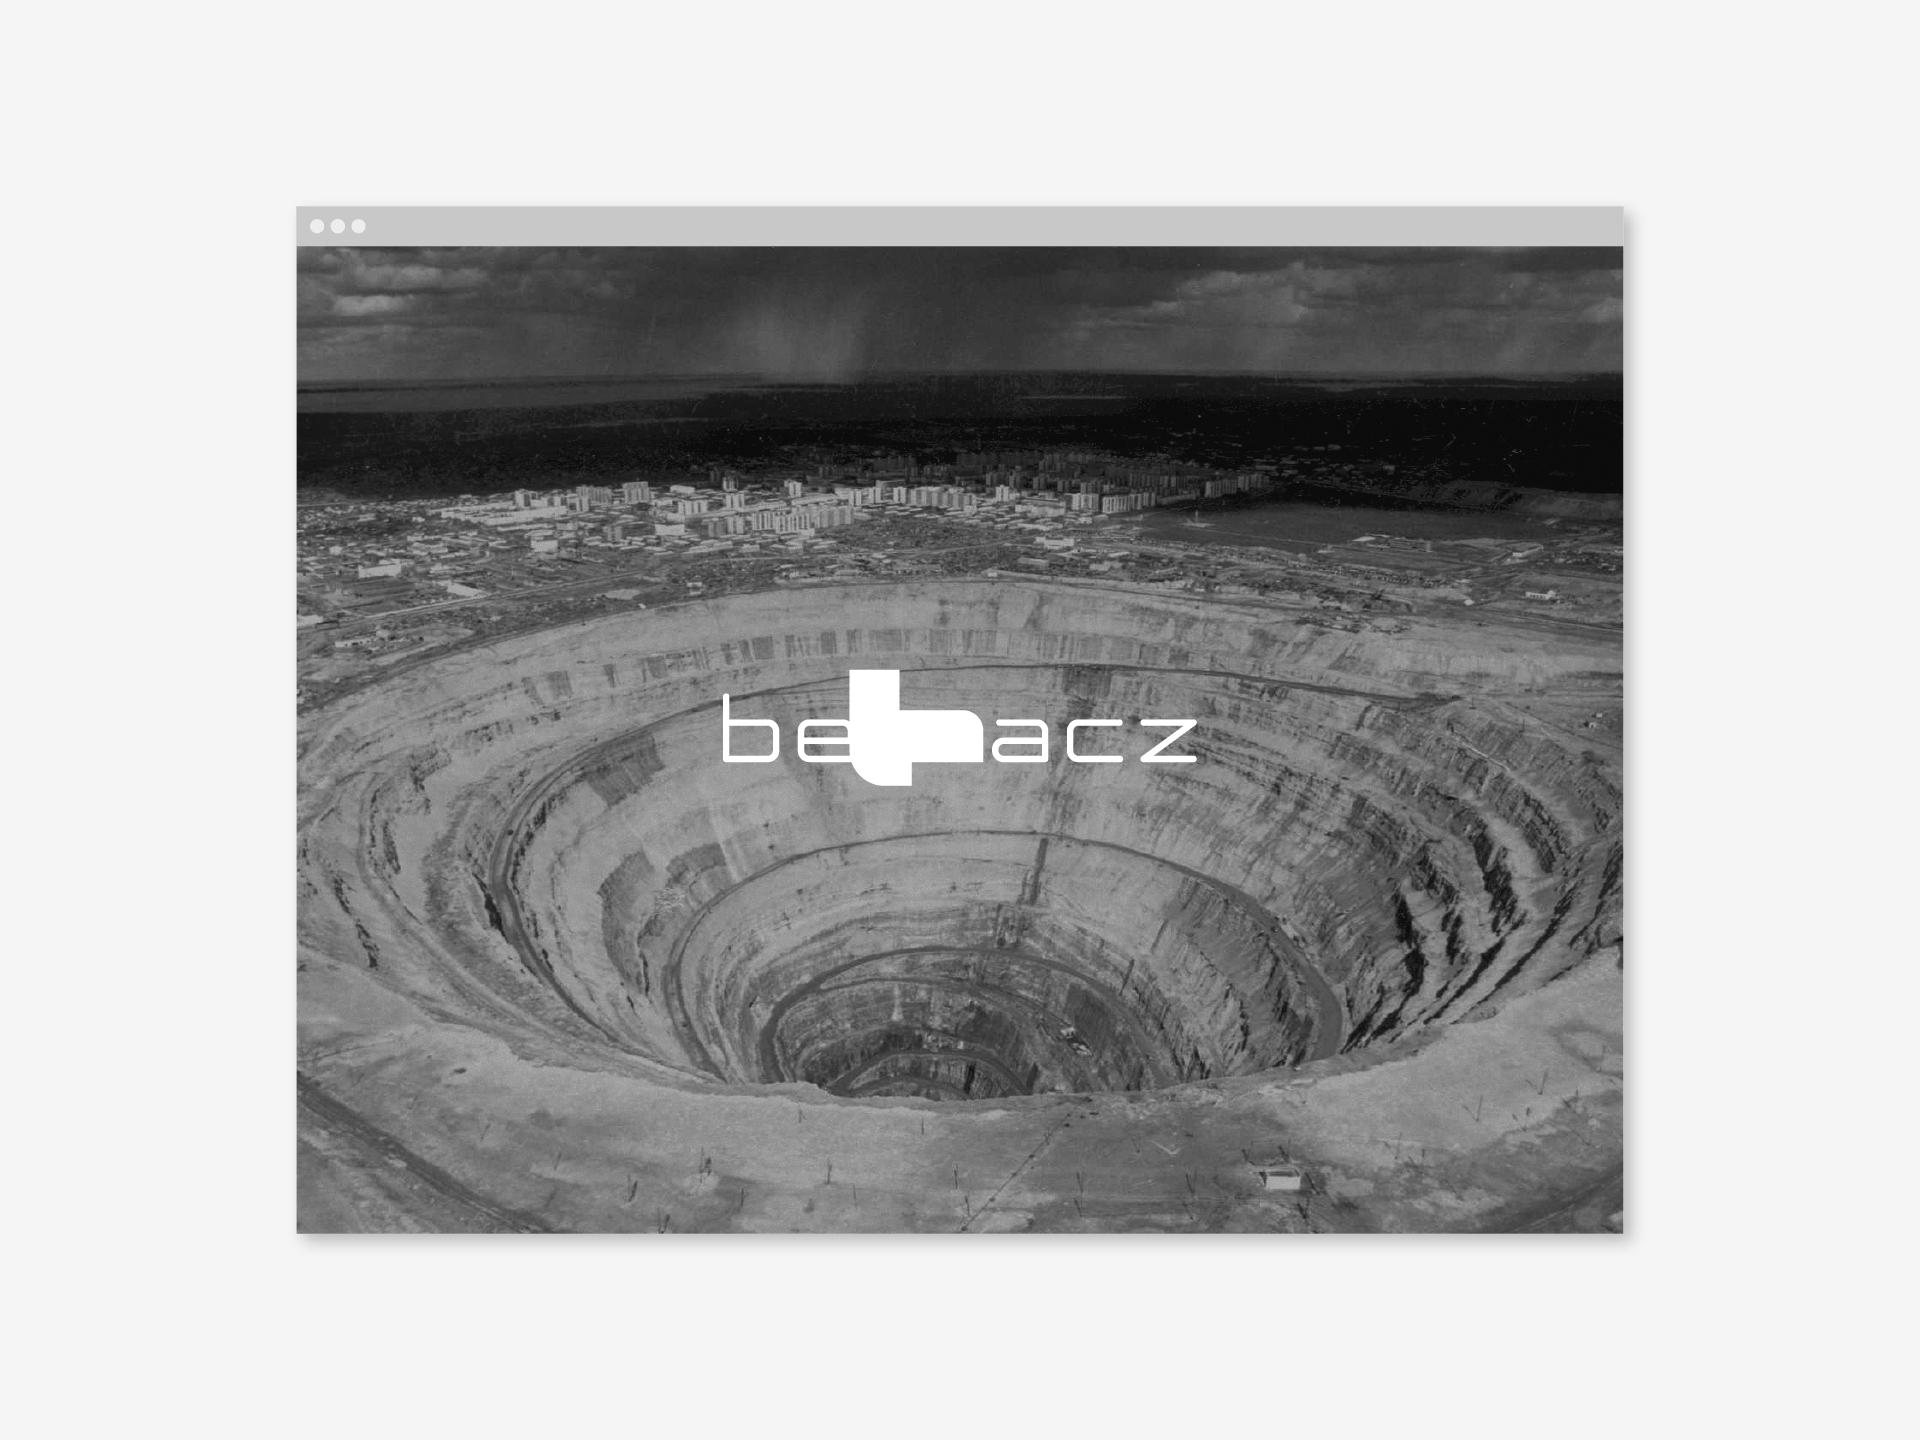 Cover image: Belmacz website